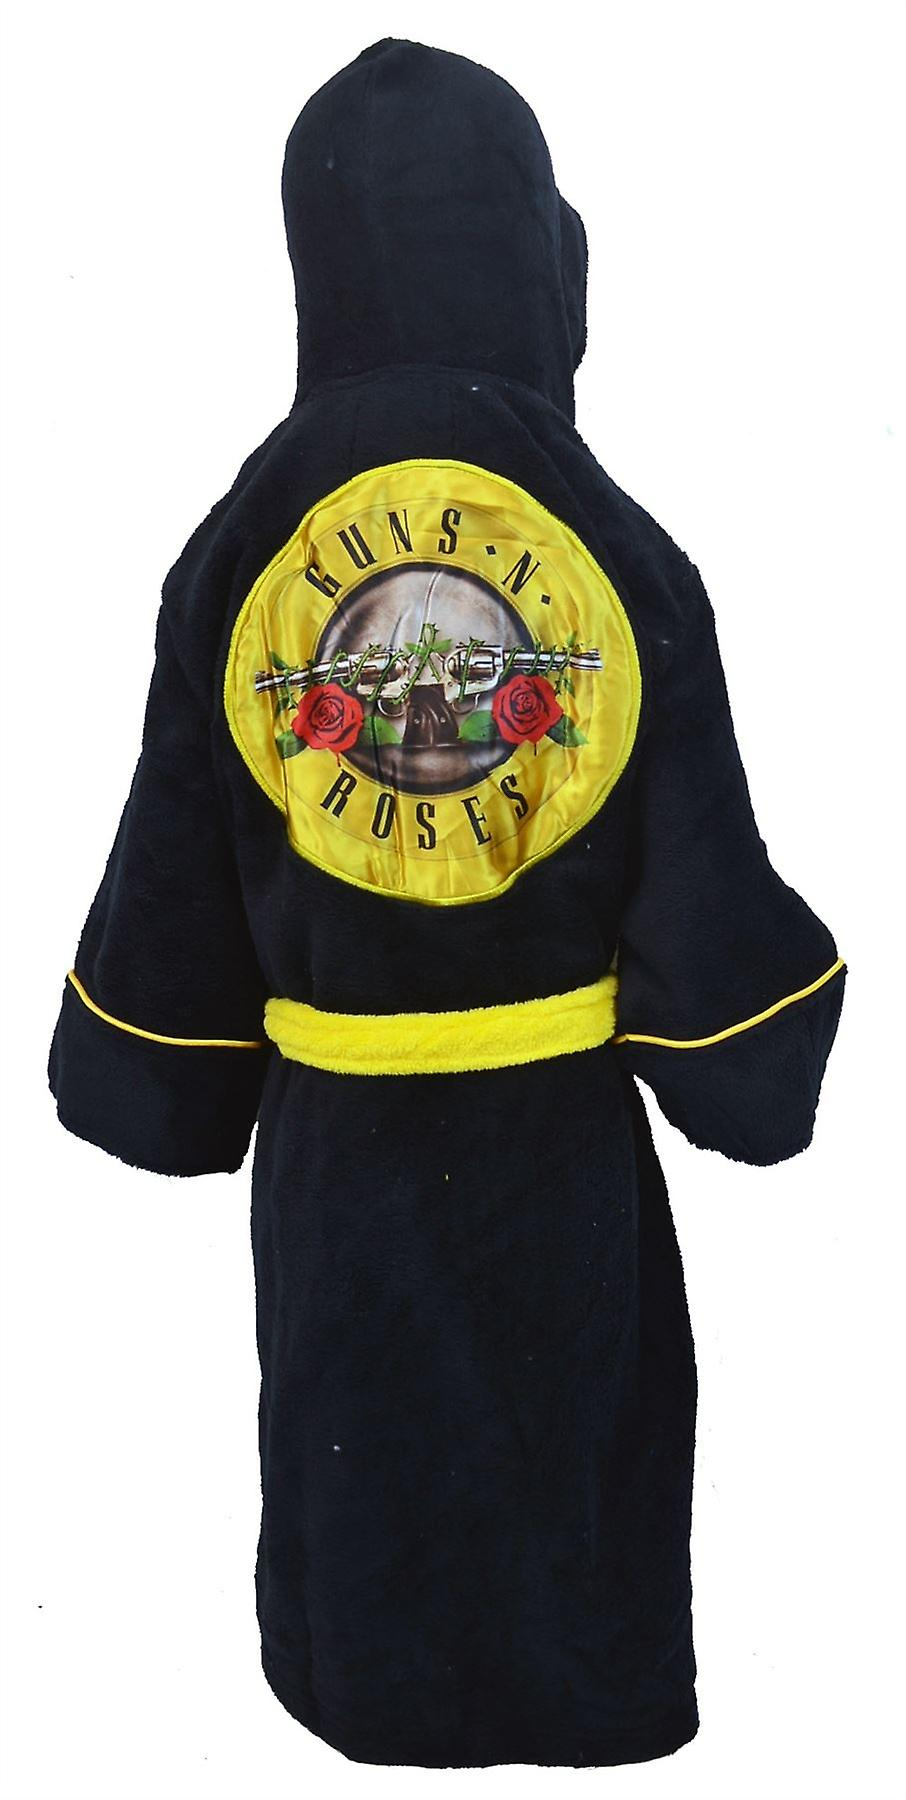 Guns and Roses Kids Dressing Gown / Bathrobe (boys girls children's child' robe) - Small